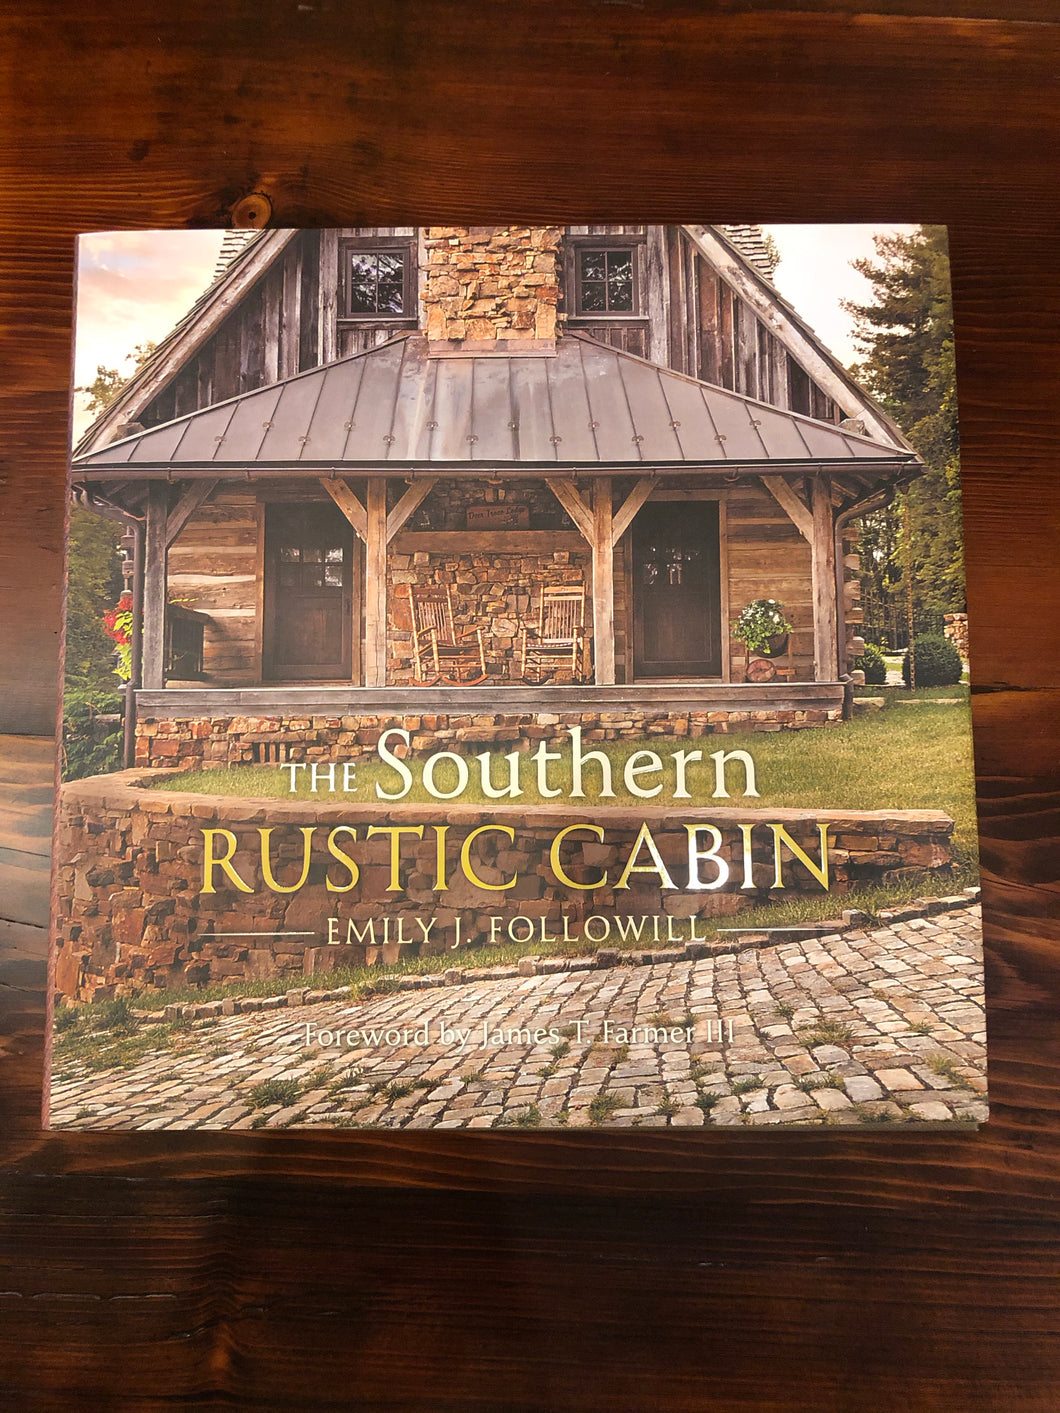 The Southern Rustic Cabin (Gibbs Smith)